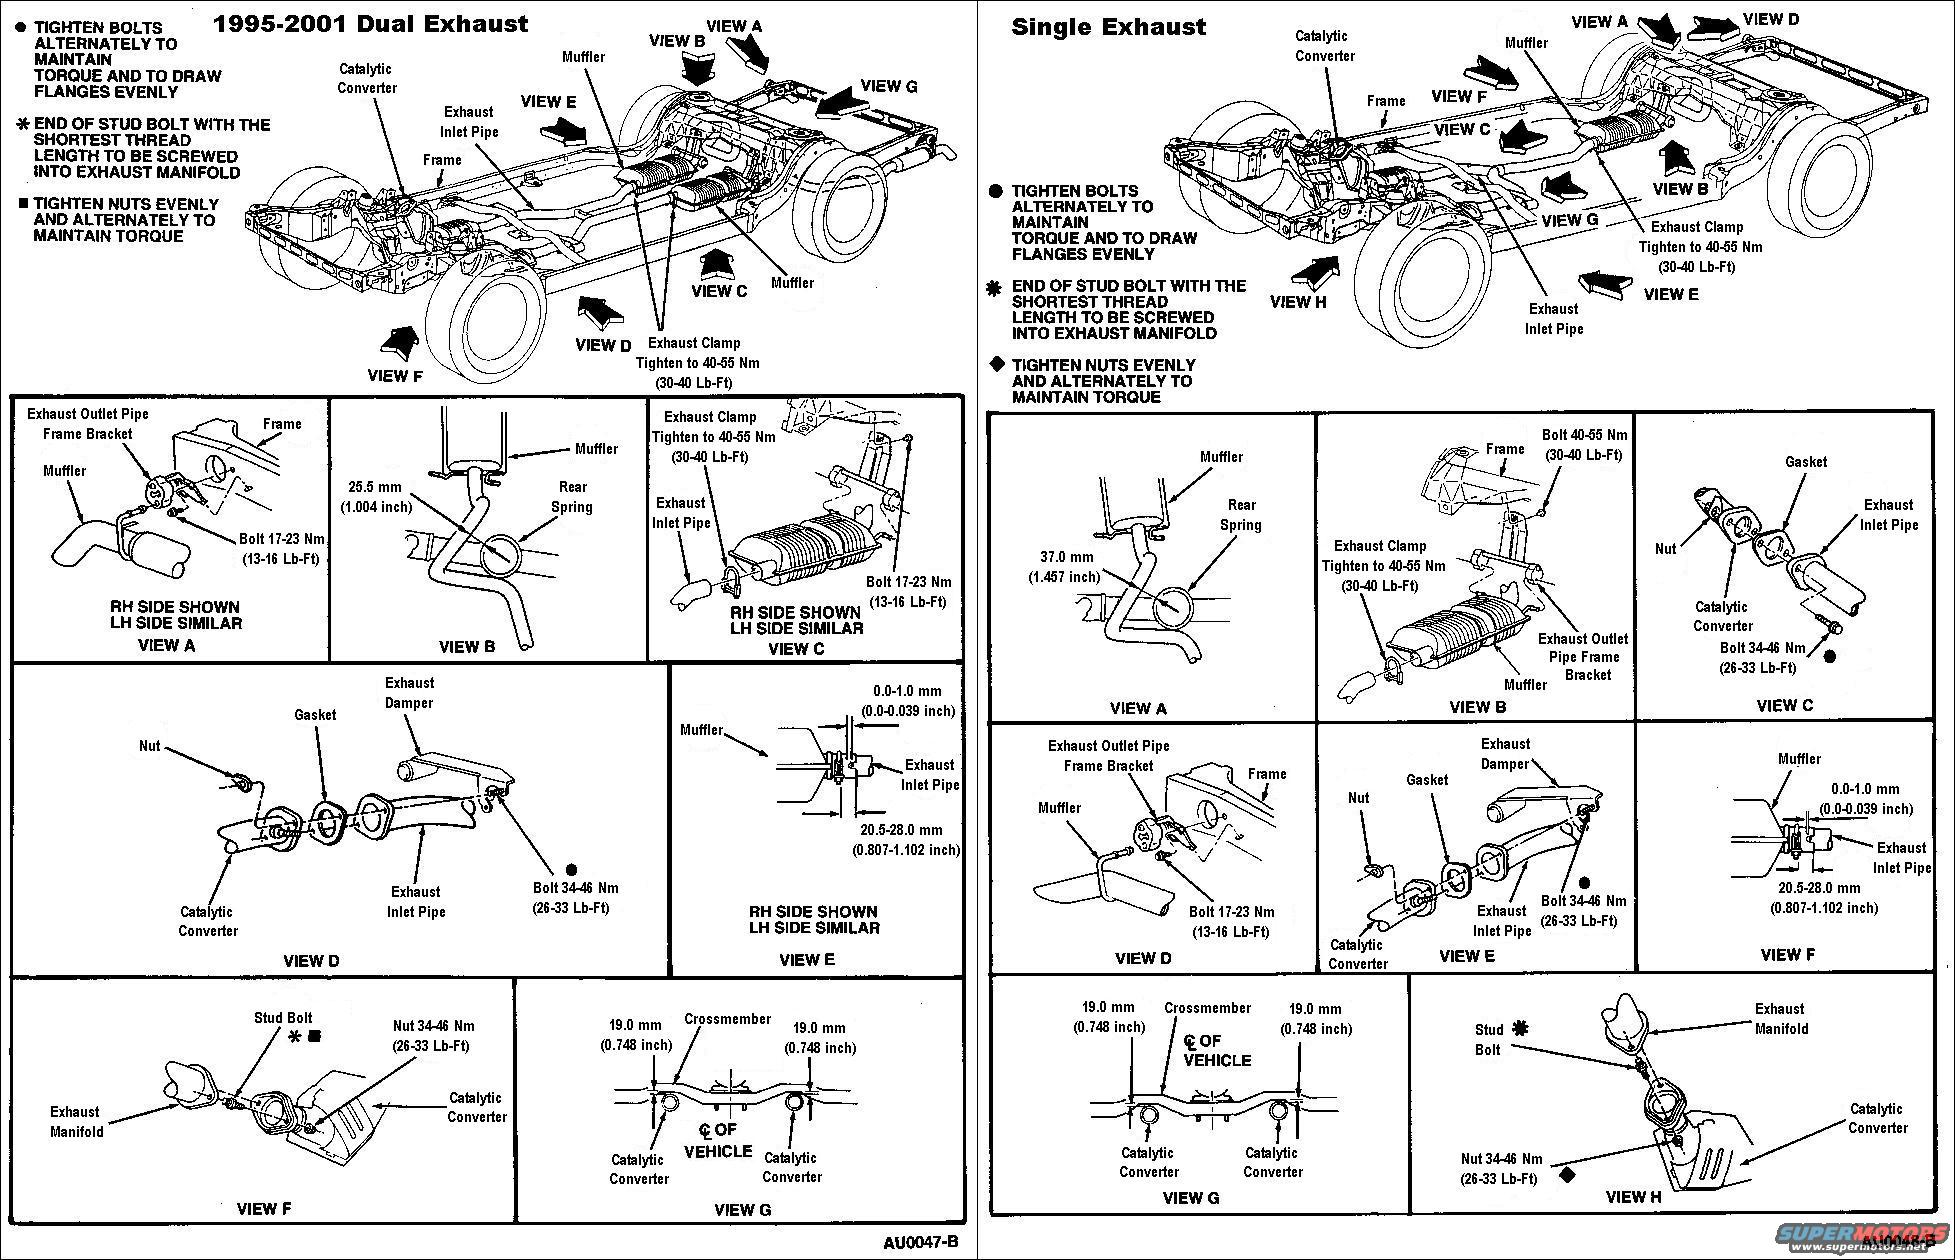 Fuse Box Diagram 1992 Ford E350 Van Wiring Library Crown Victoria Panel 2001 Engine Block And Schematic Diagrams U2022 1995 95